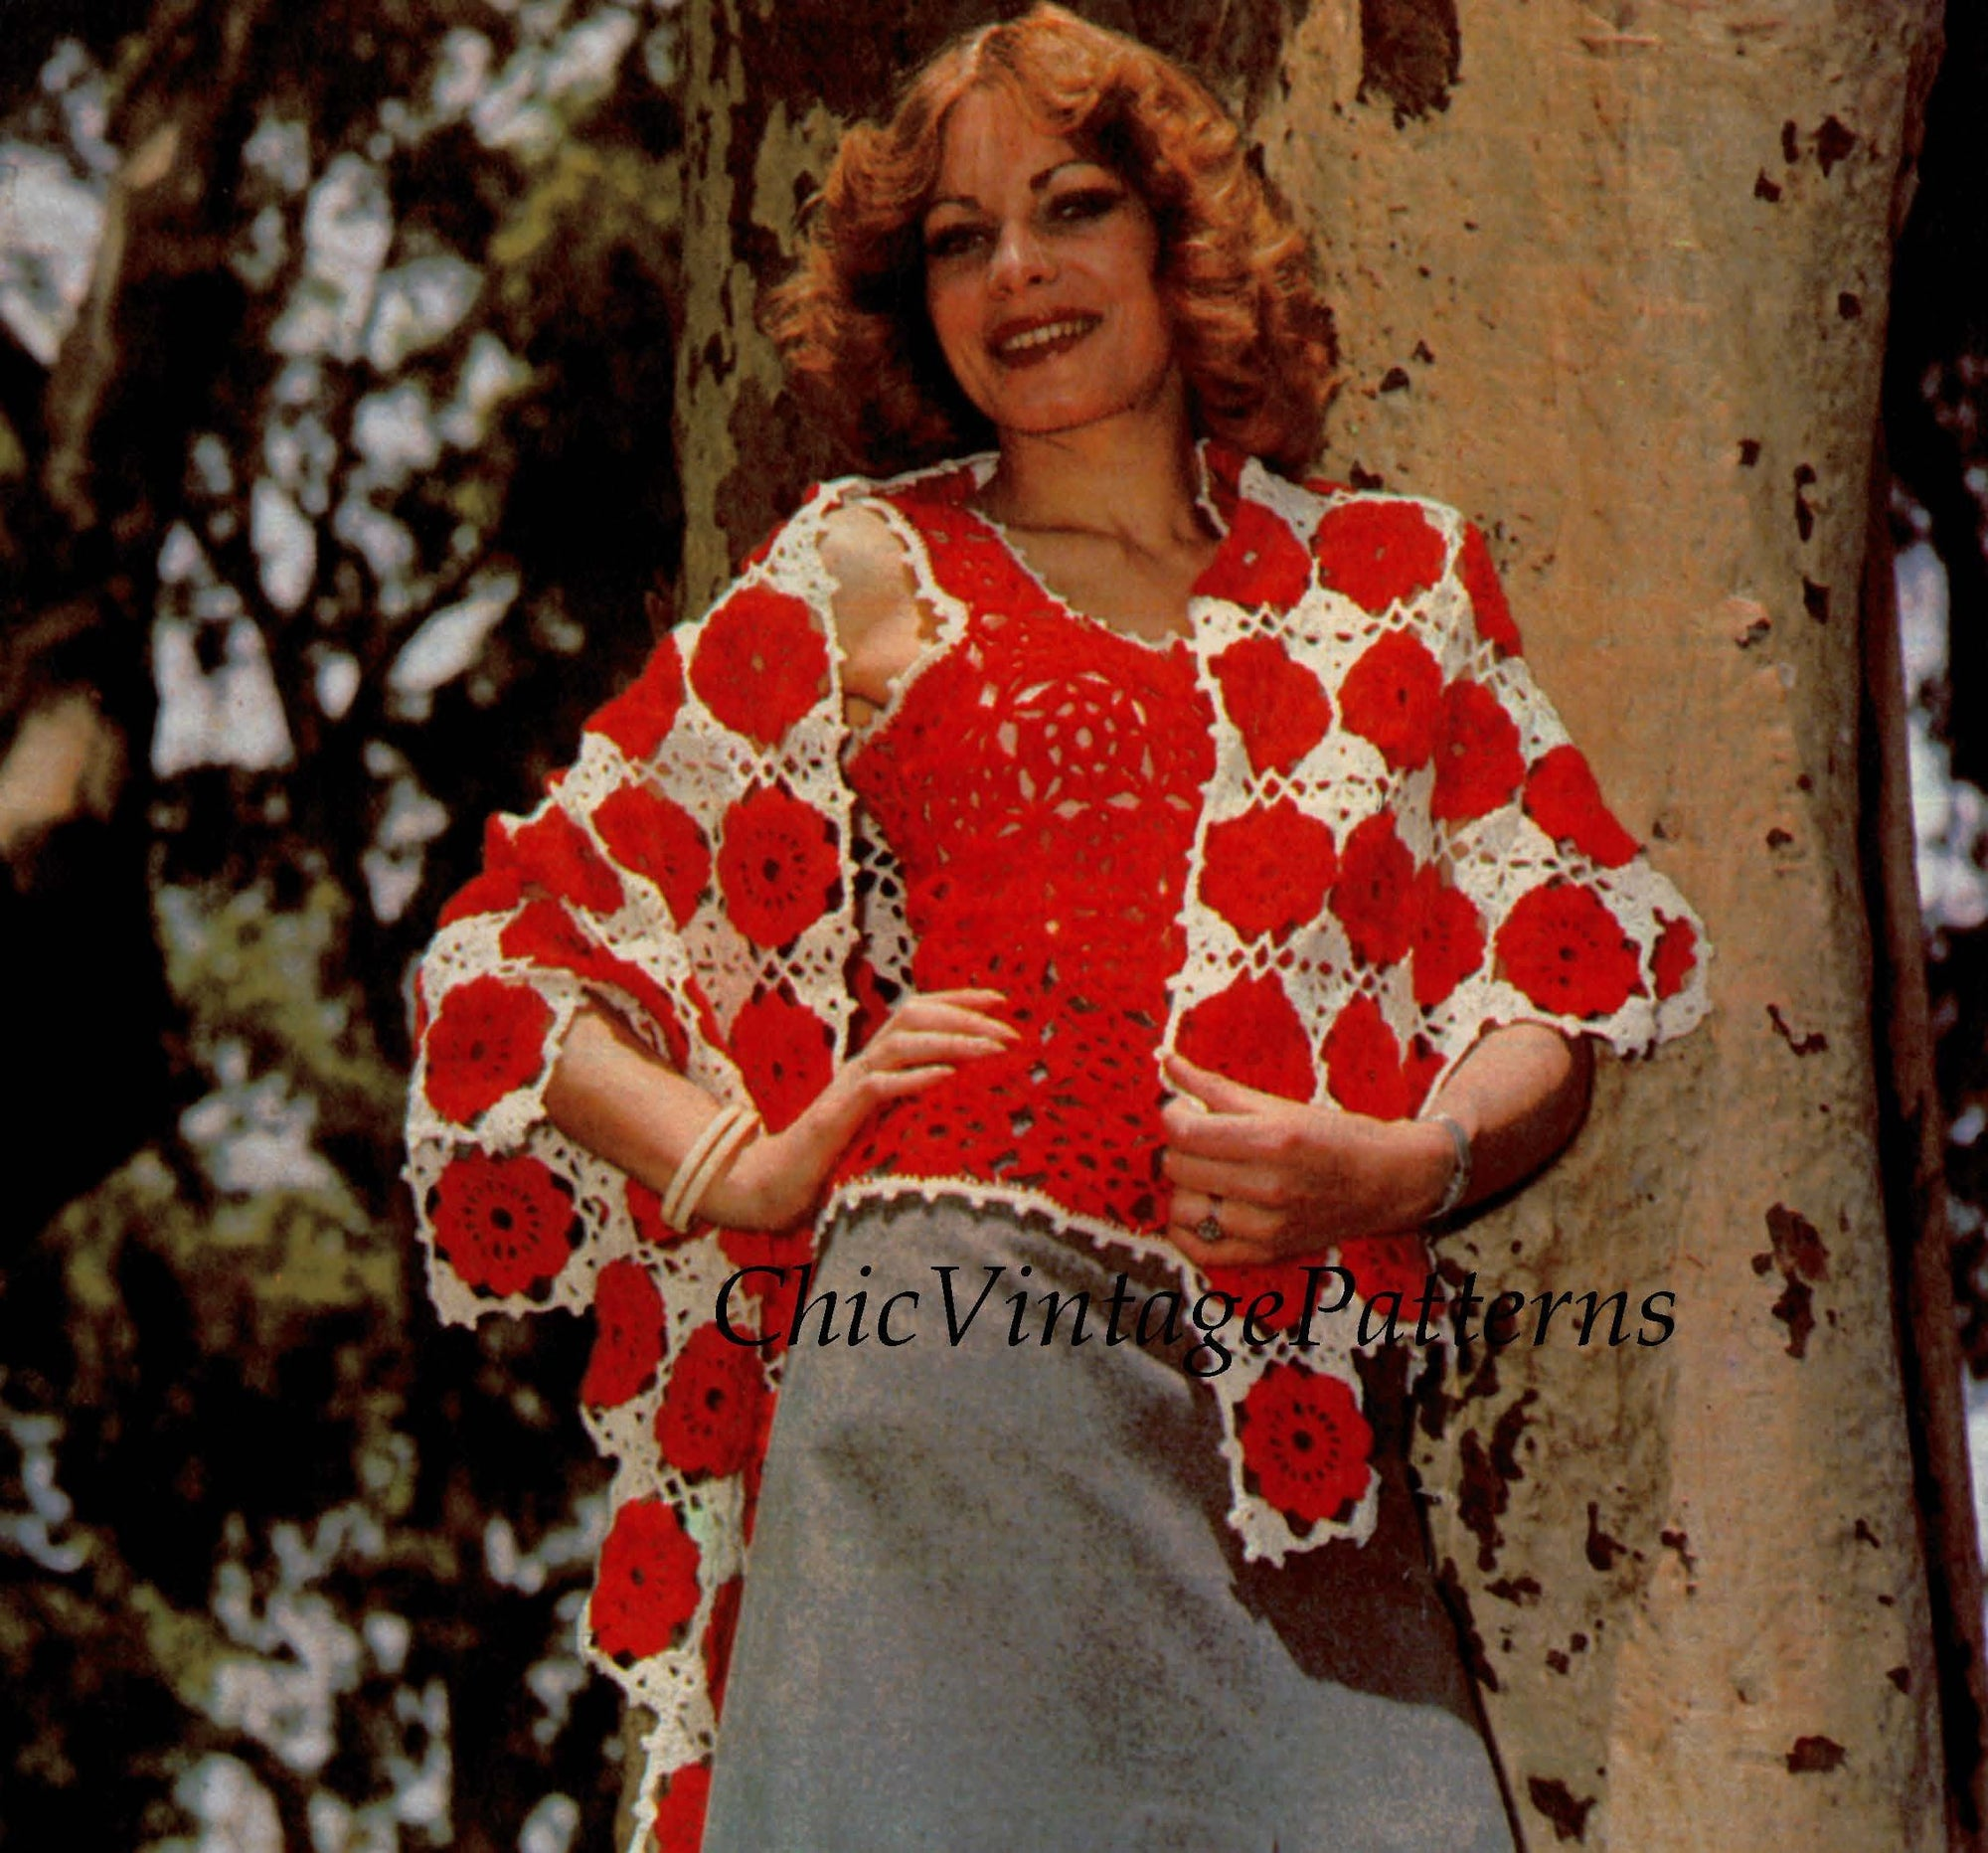 Easy-To-Crochet Ladies Top and Shawl Pattern, Granny Square, Digital Download